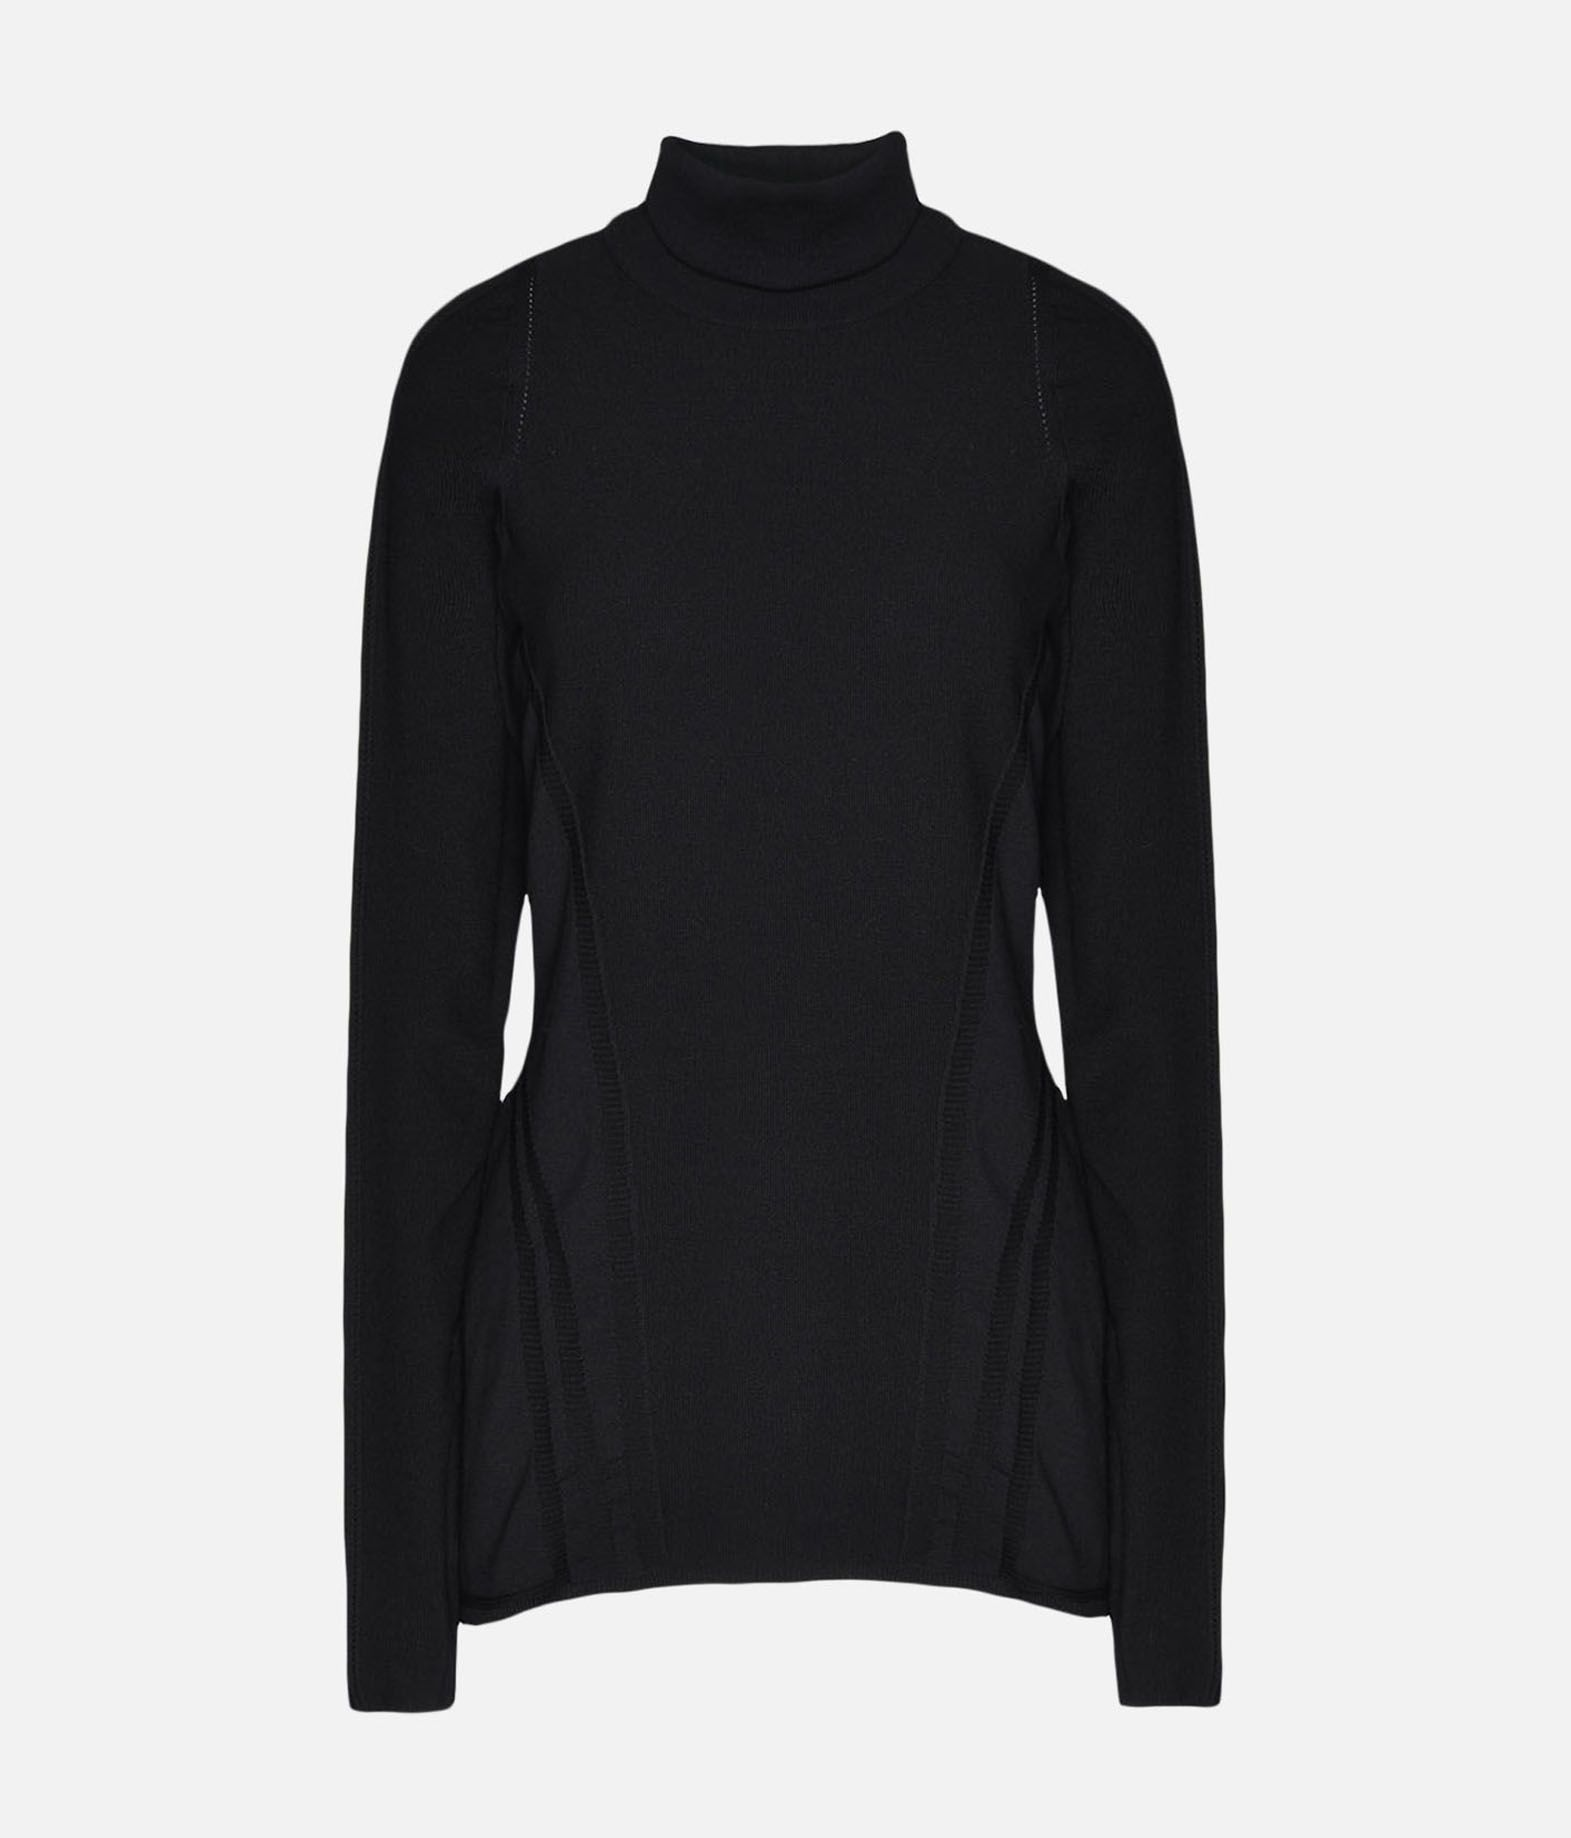 Y-3 Y-3 Tech Wool High Neck Tee Long sleeve t-shirt Woman f